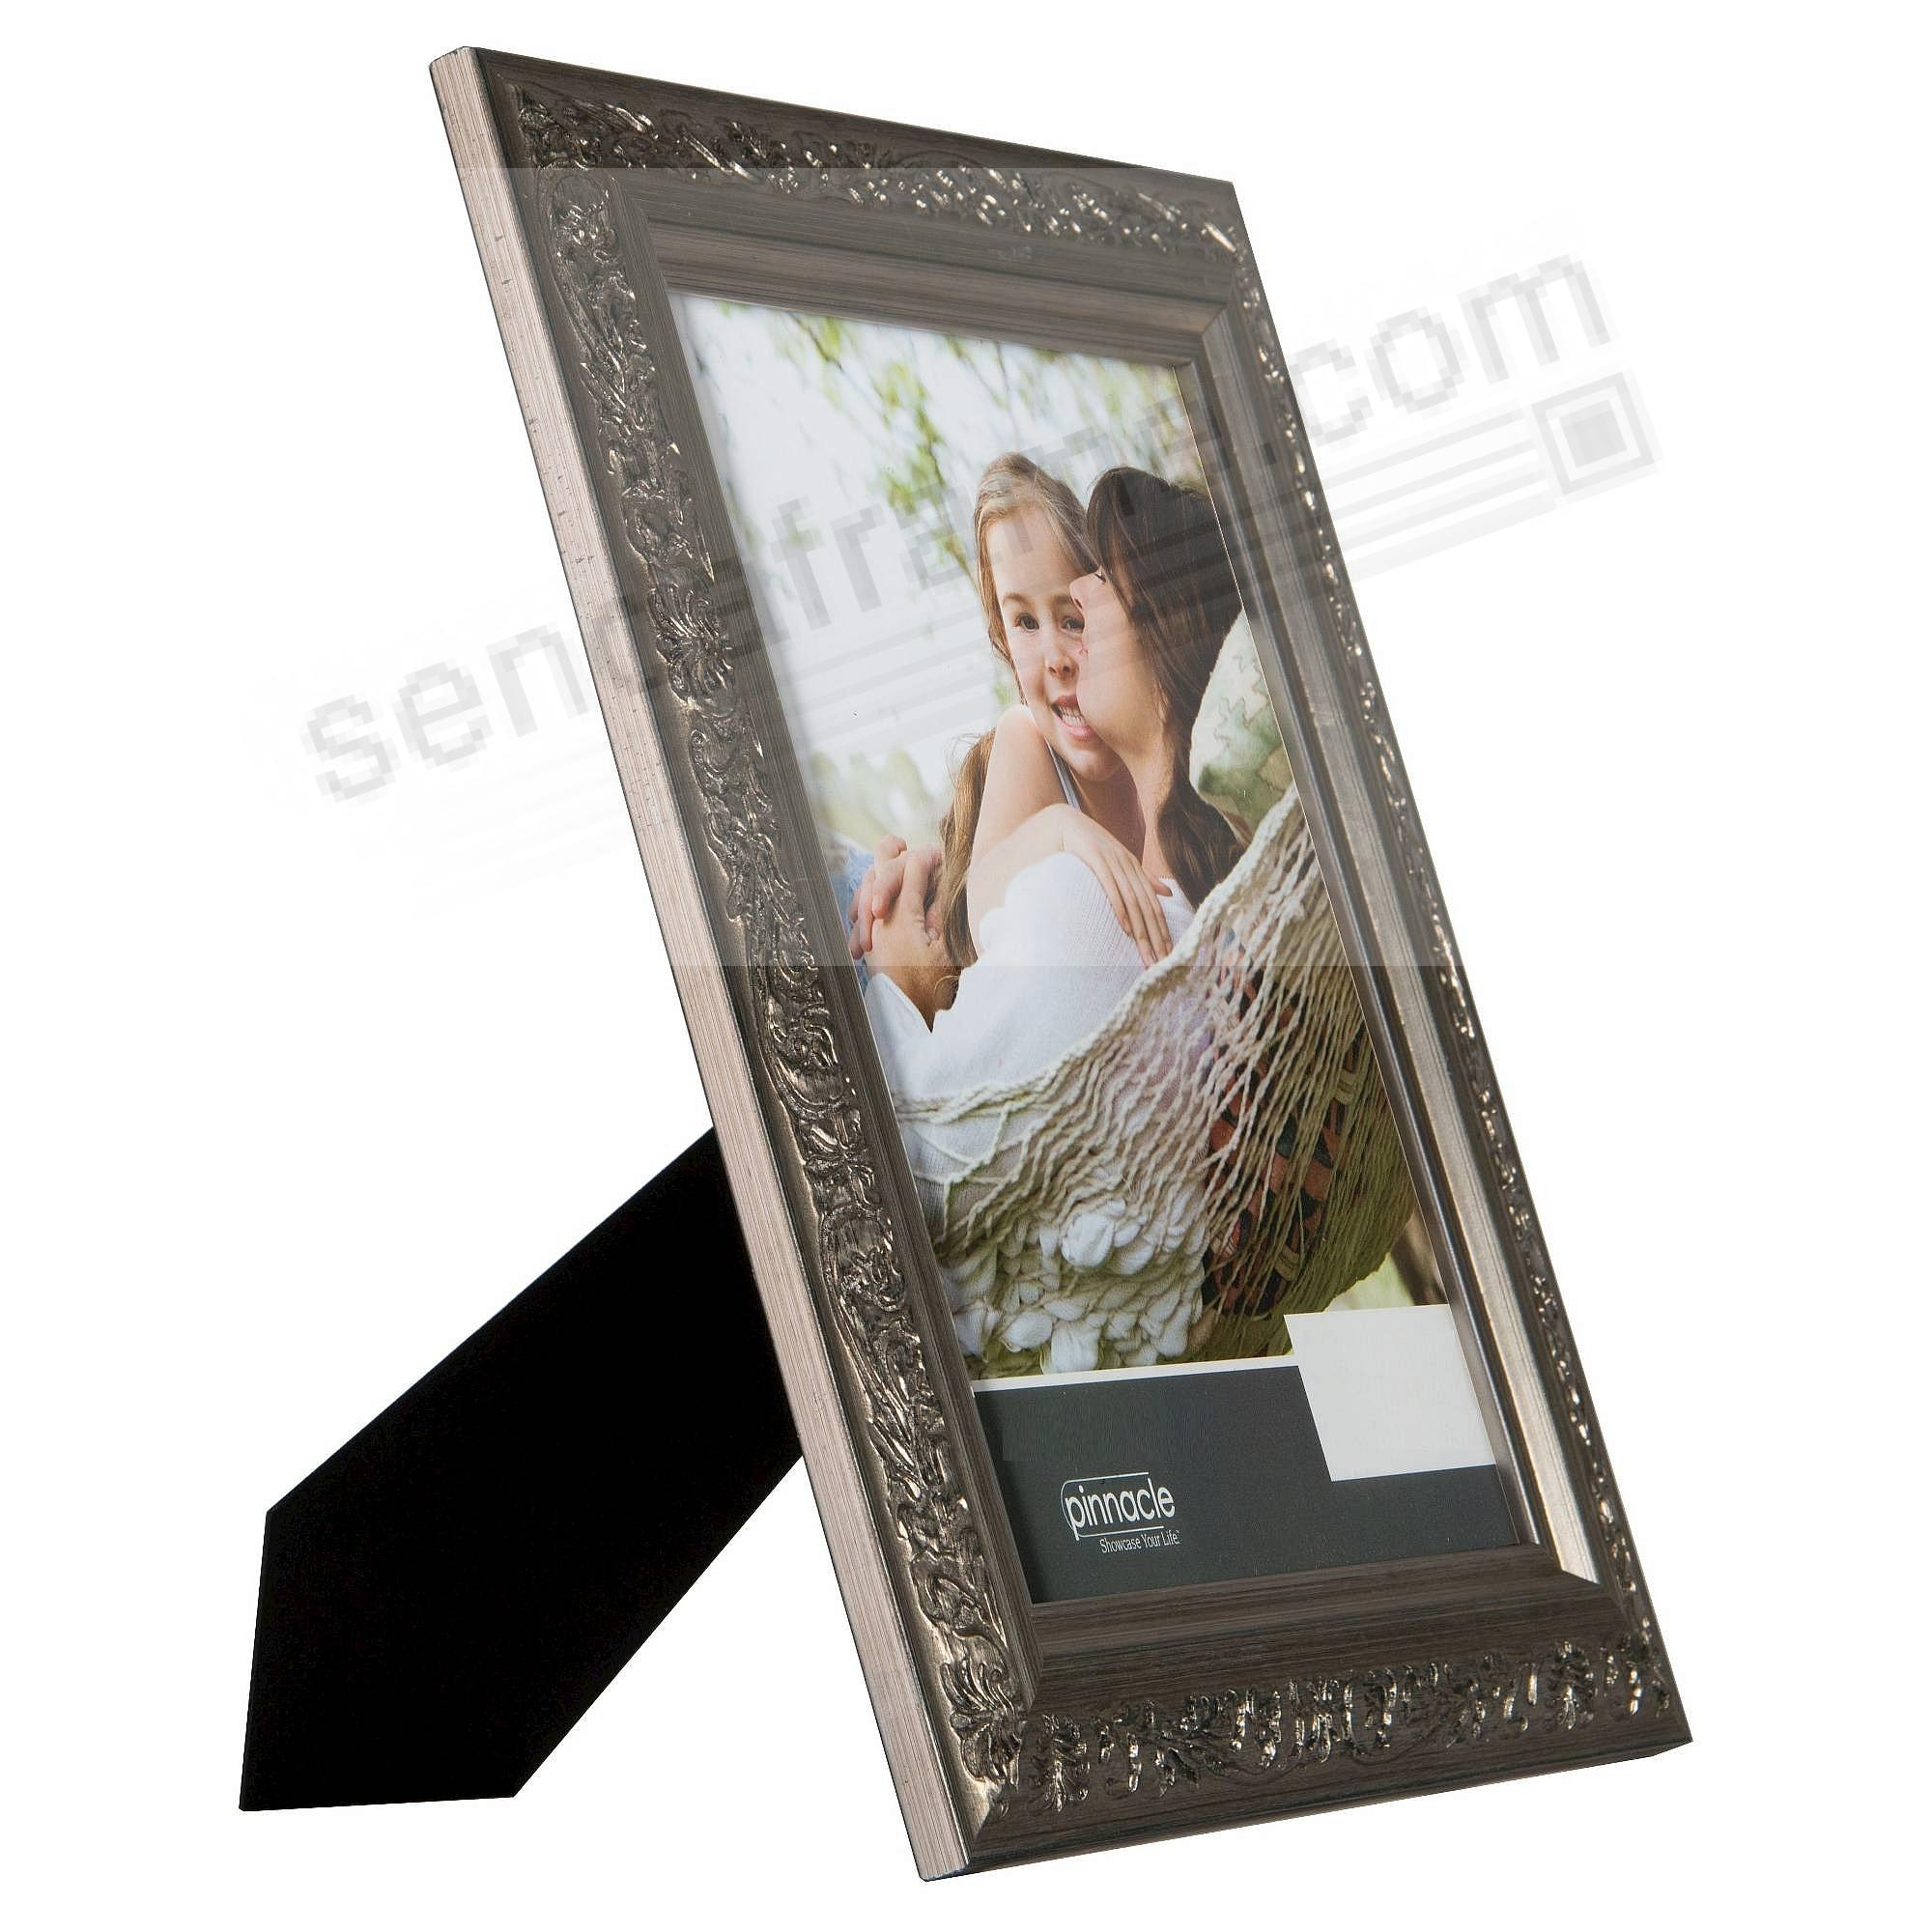 Champagne ornate 5x7 frame by pinnacle picture frames photo champagne ornate 5x7 frame by pinnacle jeuxipadfo Choice Image